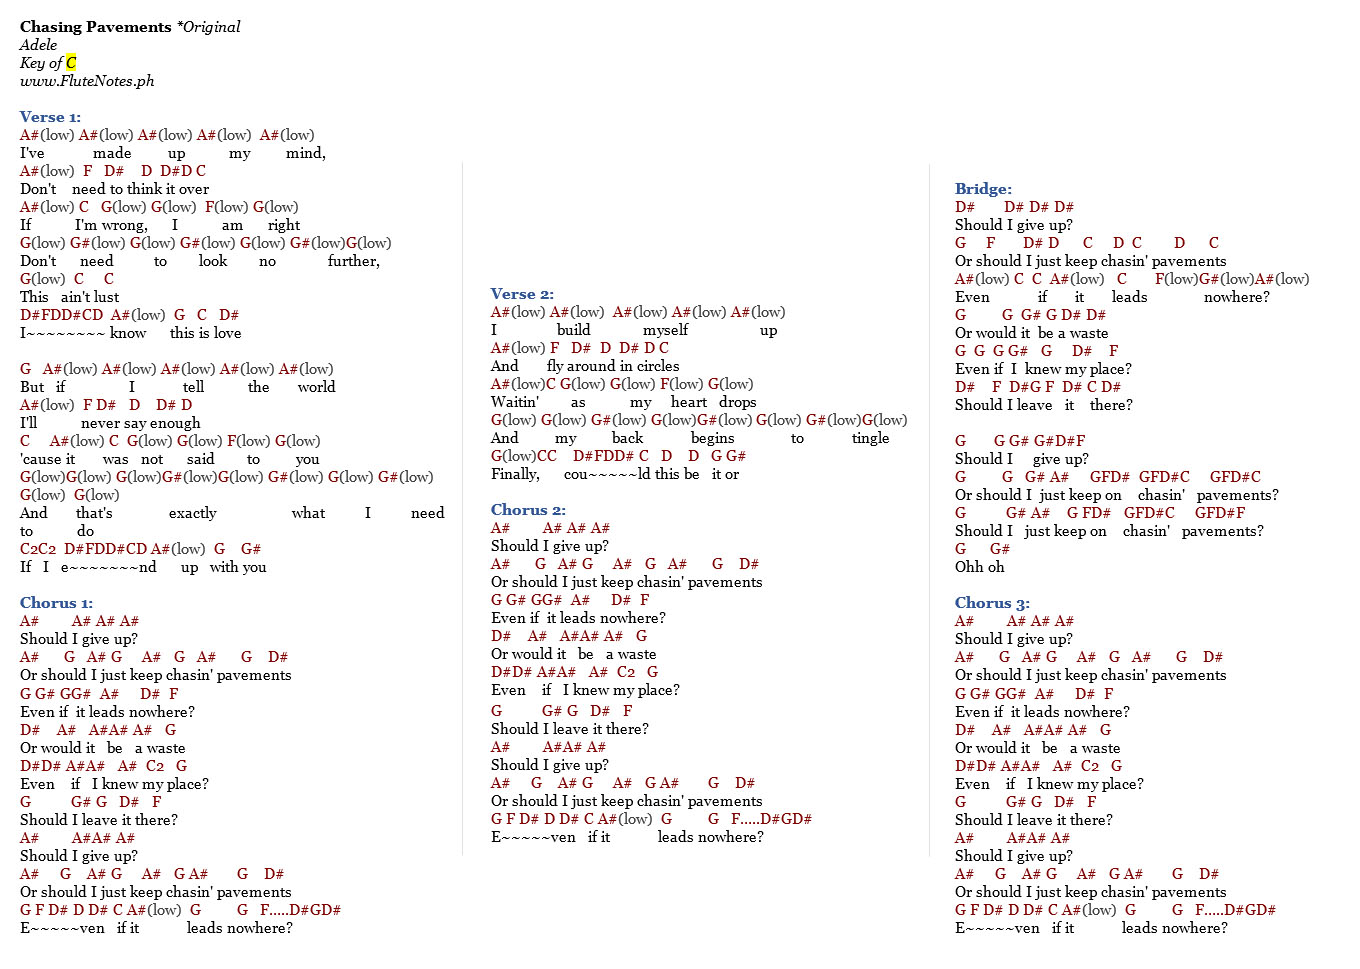 Chasing pavements adele music letter notation with lyrics for chasing pavements original hexwebz Gallery